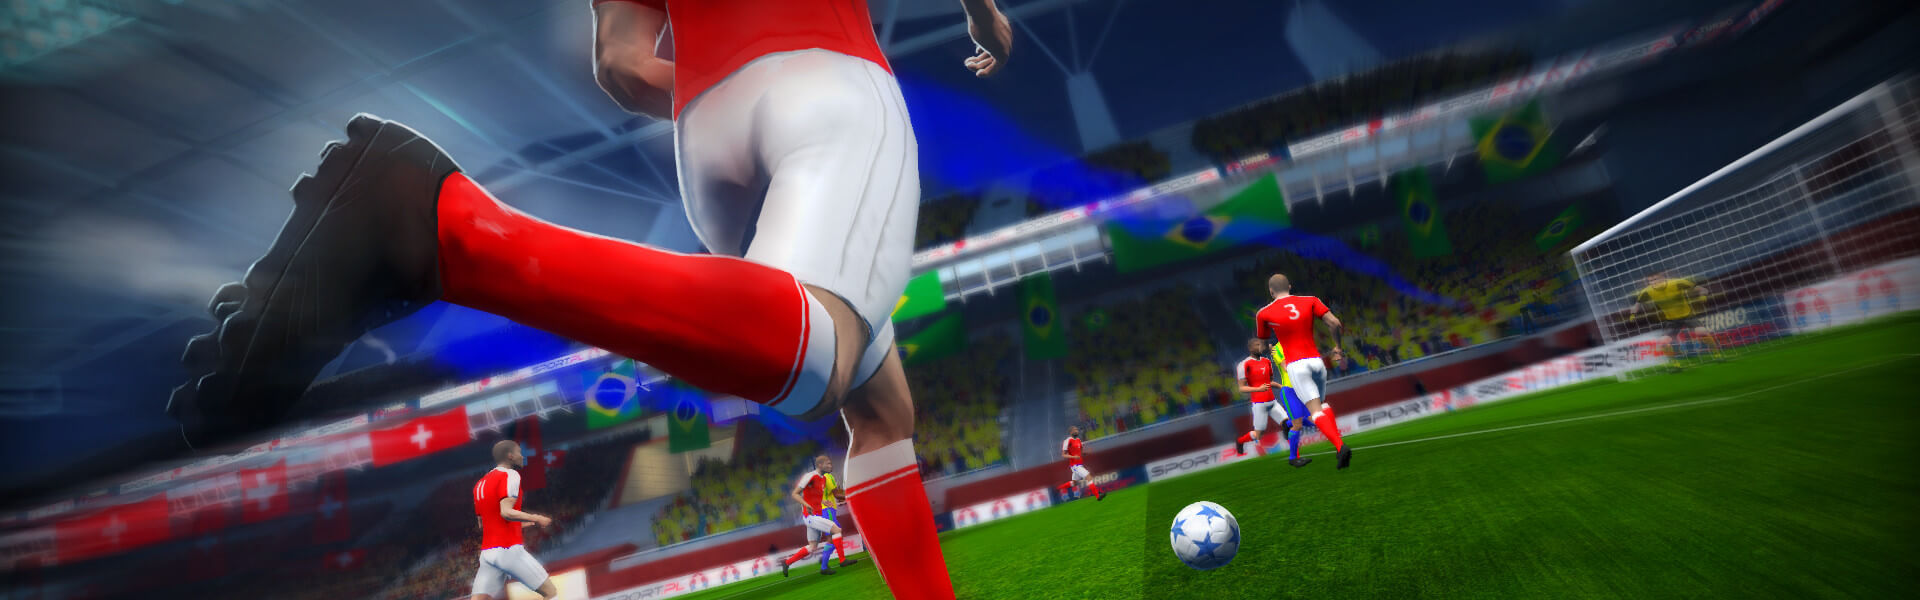 Turbo Soccer VR Steam Key GLOBAL